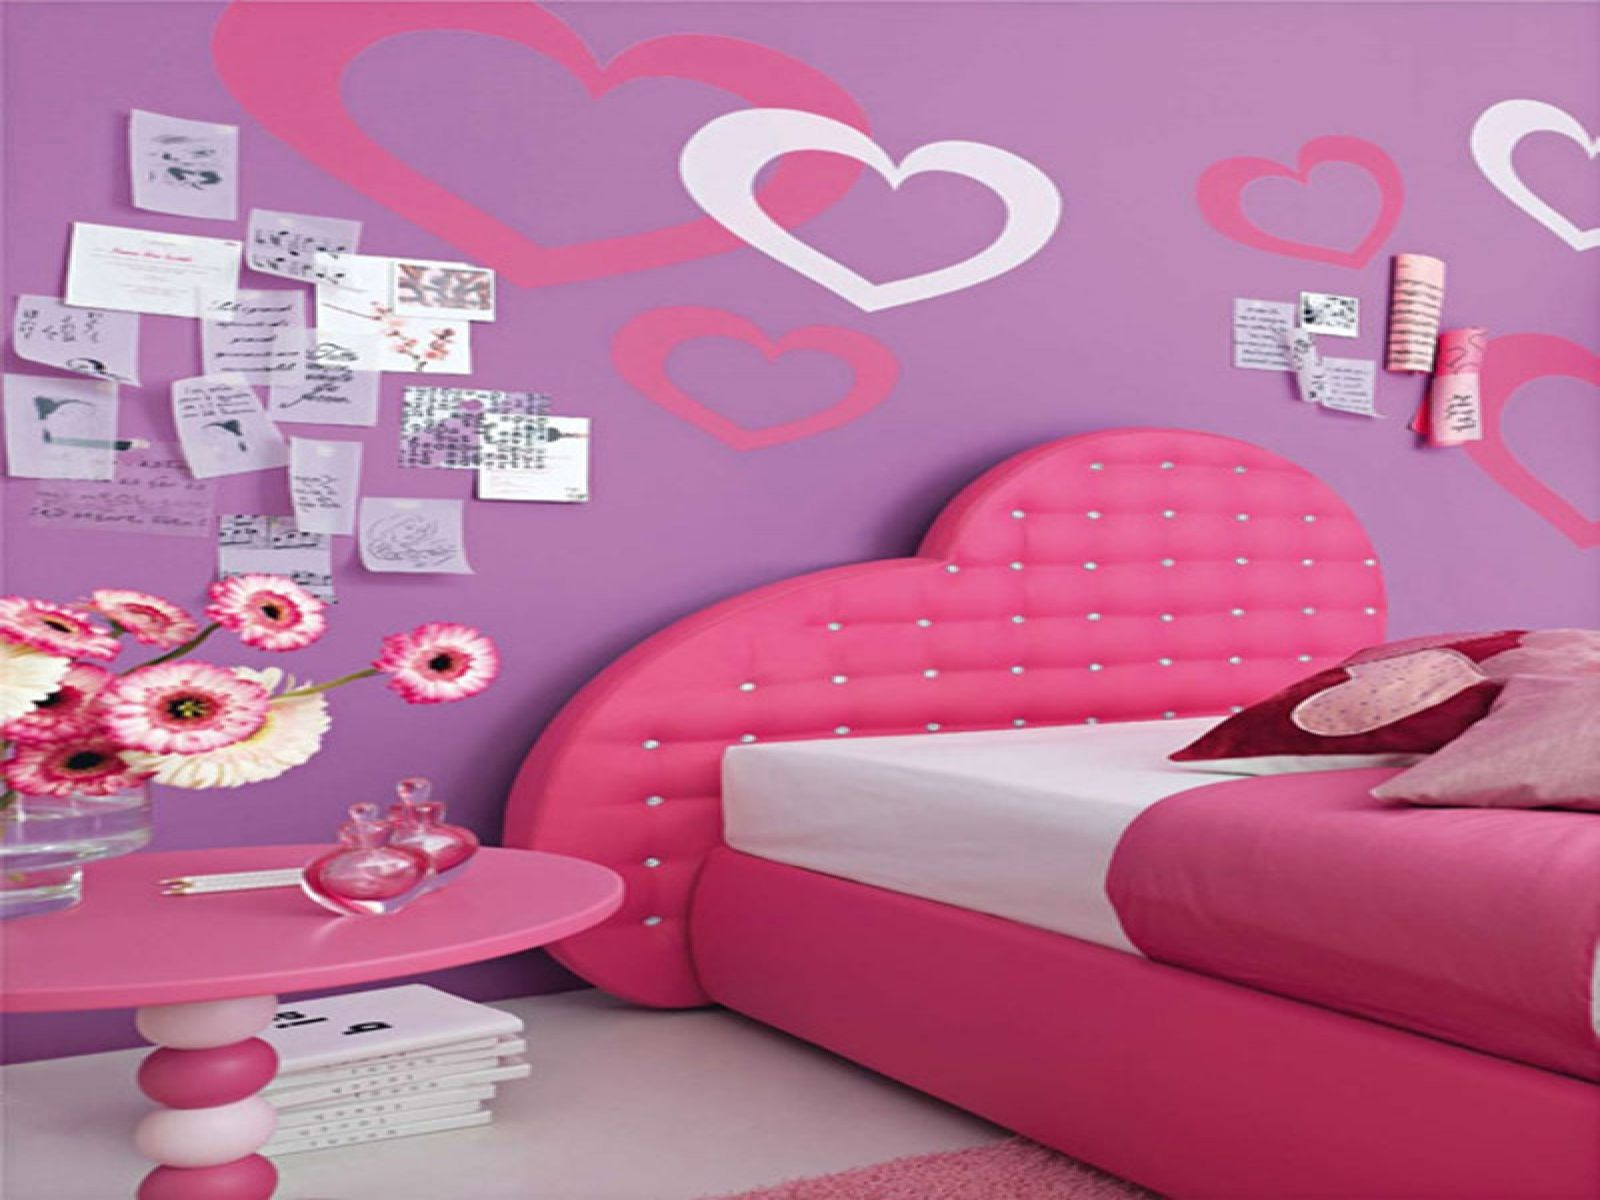 Bedroom wall designs for teenage girls - Bedroom Kids Bedroom Wall Decor As Decor For Kids Bedroom By Making A Impressive Home Remodeling Or Renovation Of Your Bedroom 4